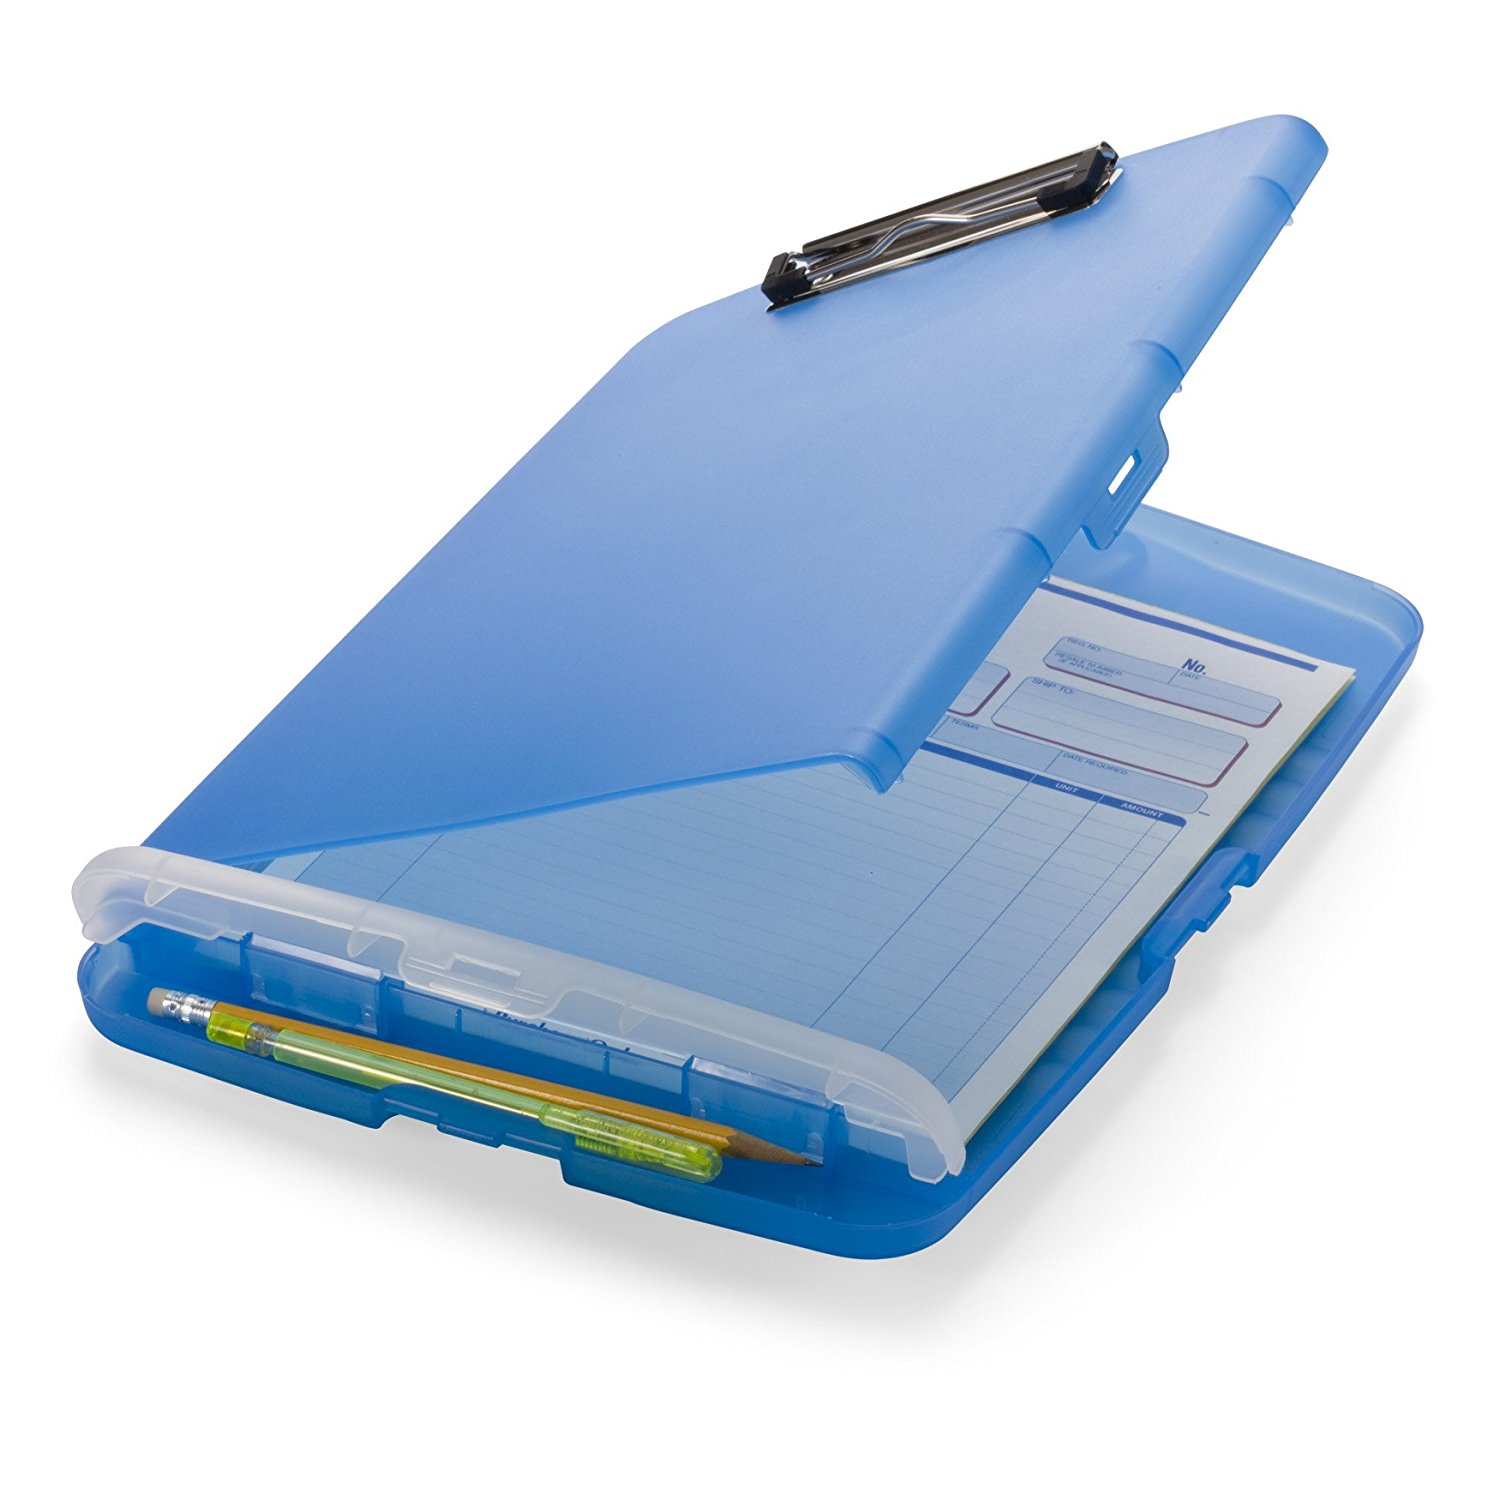 Slim Clipboard Storage Box, Translucent Blue (83304), Forms Aluminum Size Black 83309 2Pack Orange CarryAll Capacity 83357 from 83353 10 11.., By Officemate